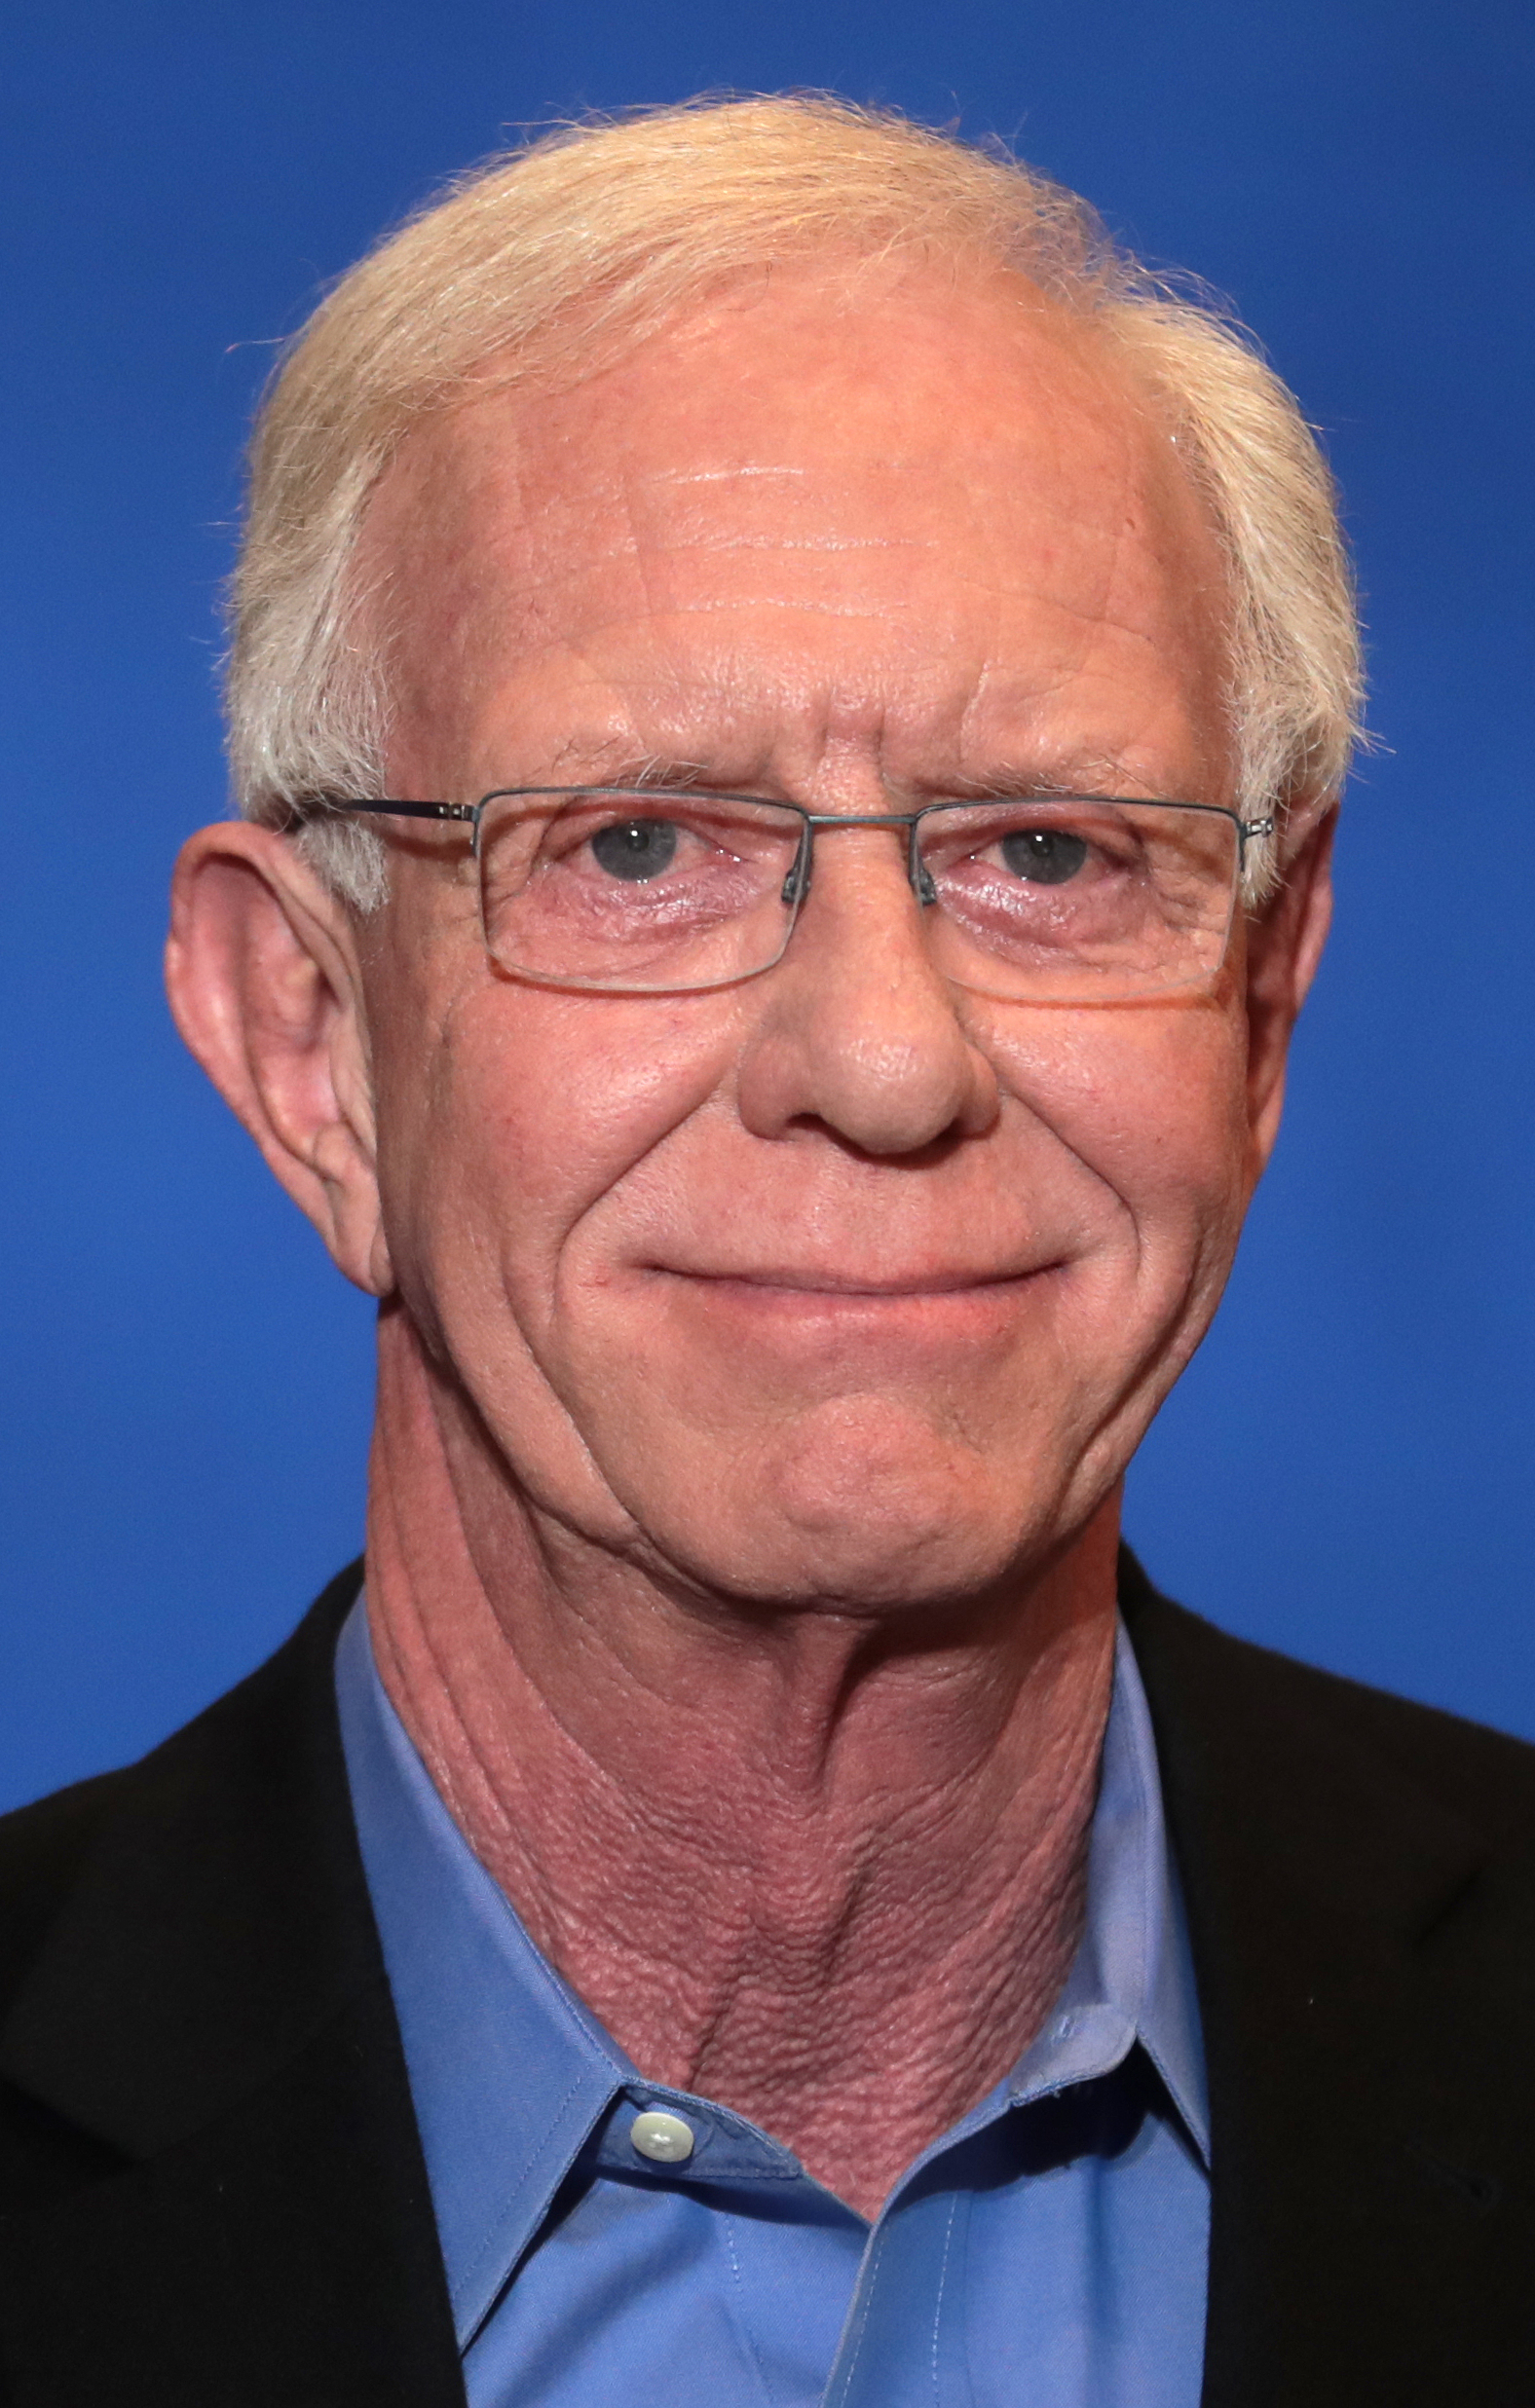 The 70-year old son of father (?) and mother(?) Chesley Sullenberger in 2021 photo. Chesley Sullenberger earned a  million dollar salary - leaving the net worth at  million in 2021